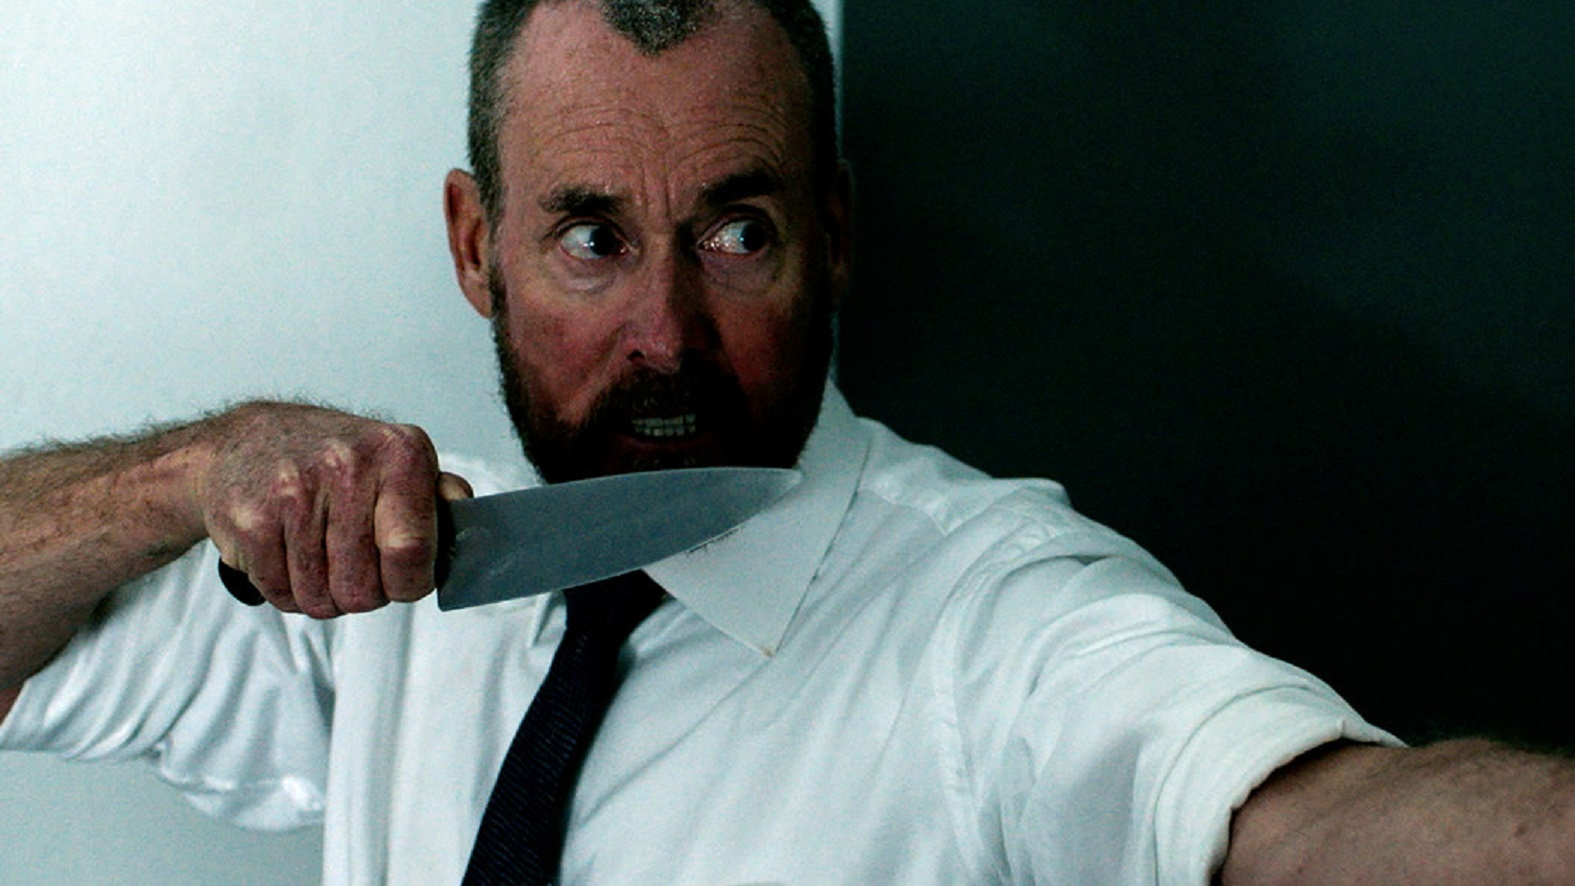 John C. McGinley moves through the office armed with knife in The Belko Experiment (2016)